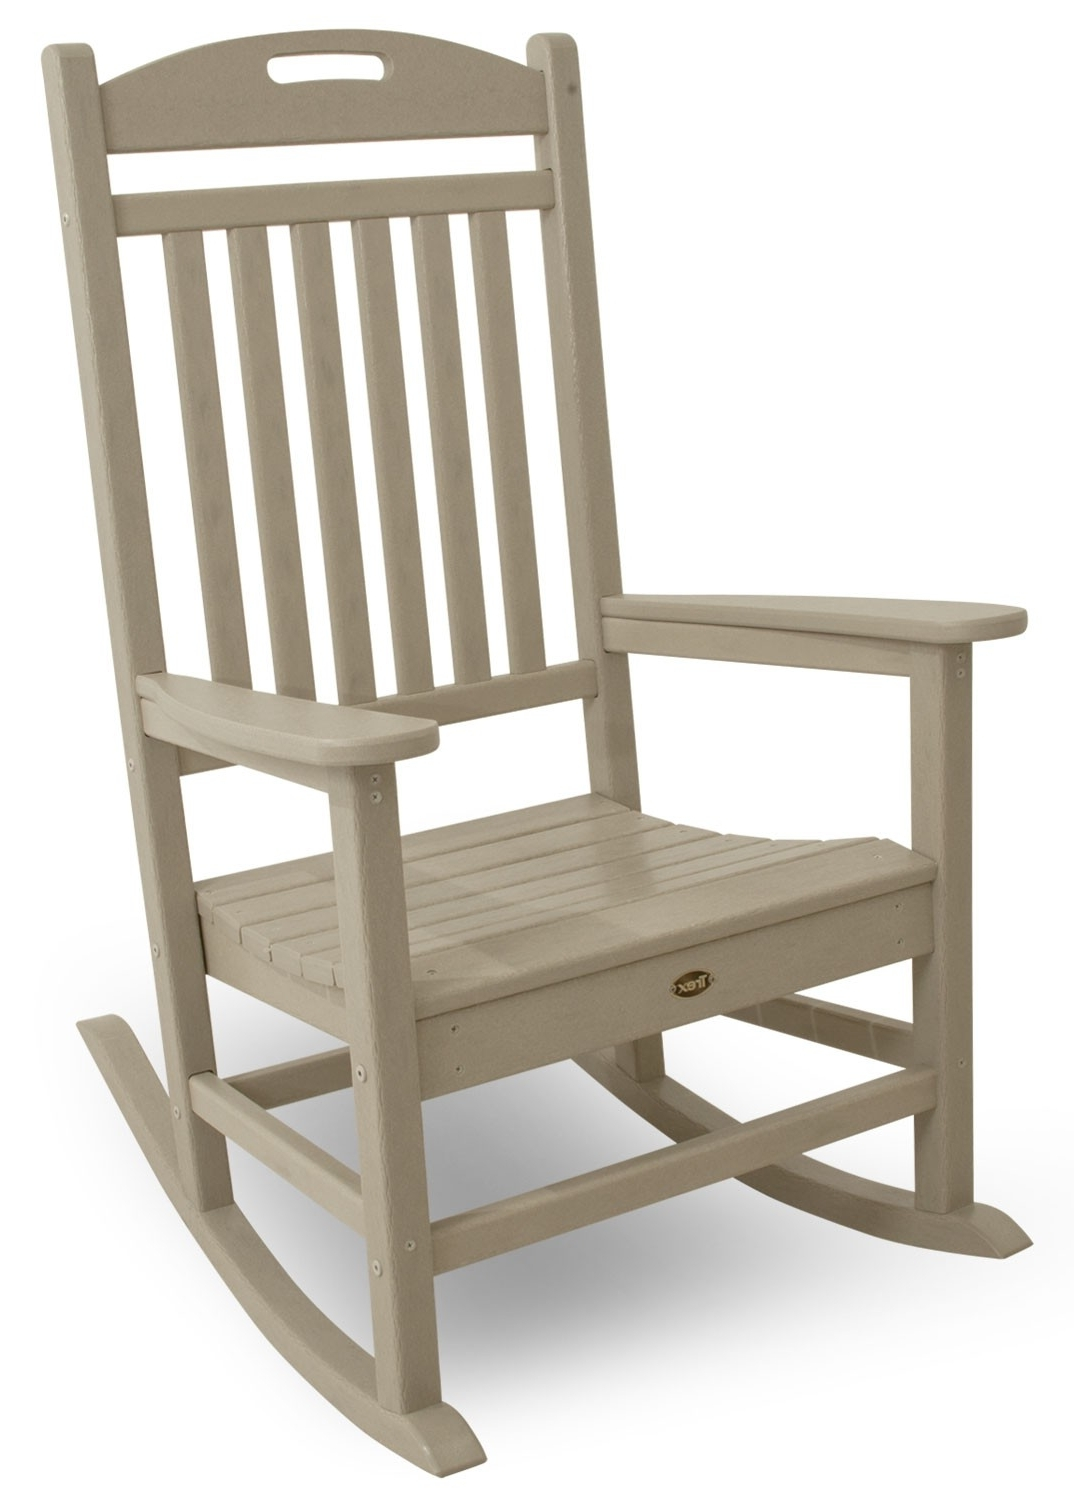 Yacht Club Rocking Chair Regarding Widely Used Rocking Chairs For Adults (View 15 of 15)